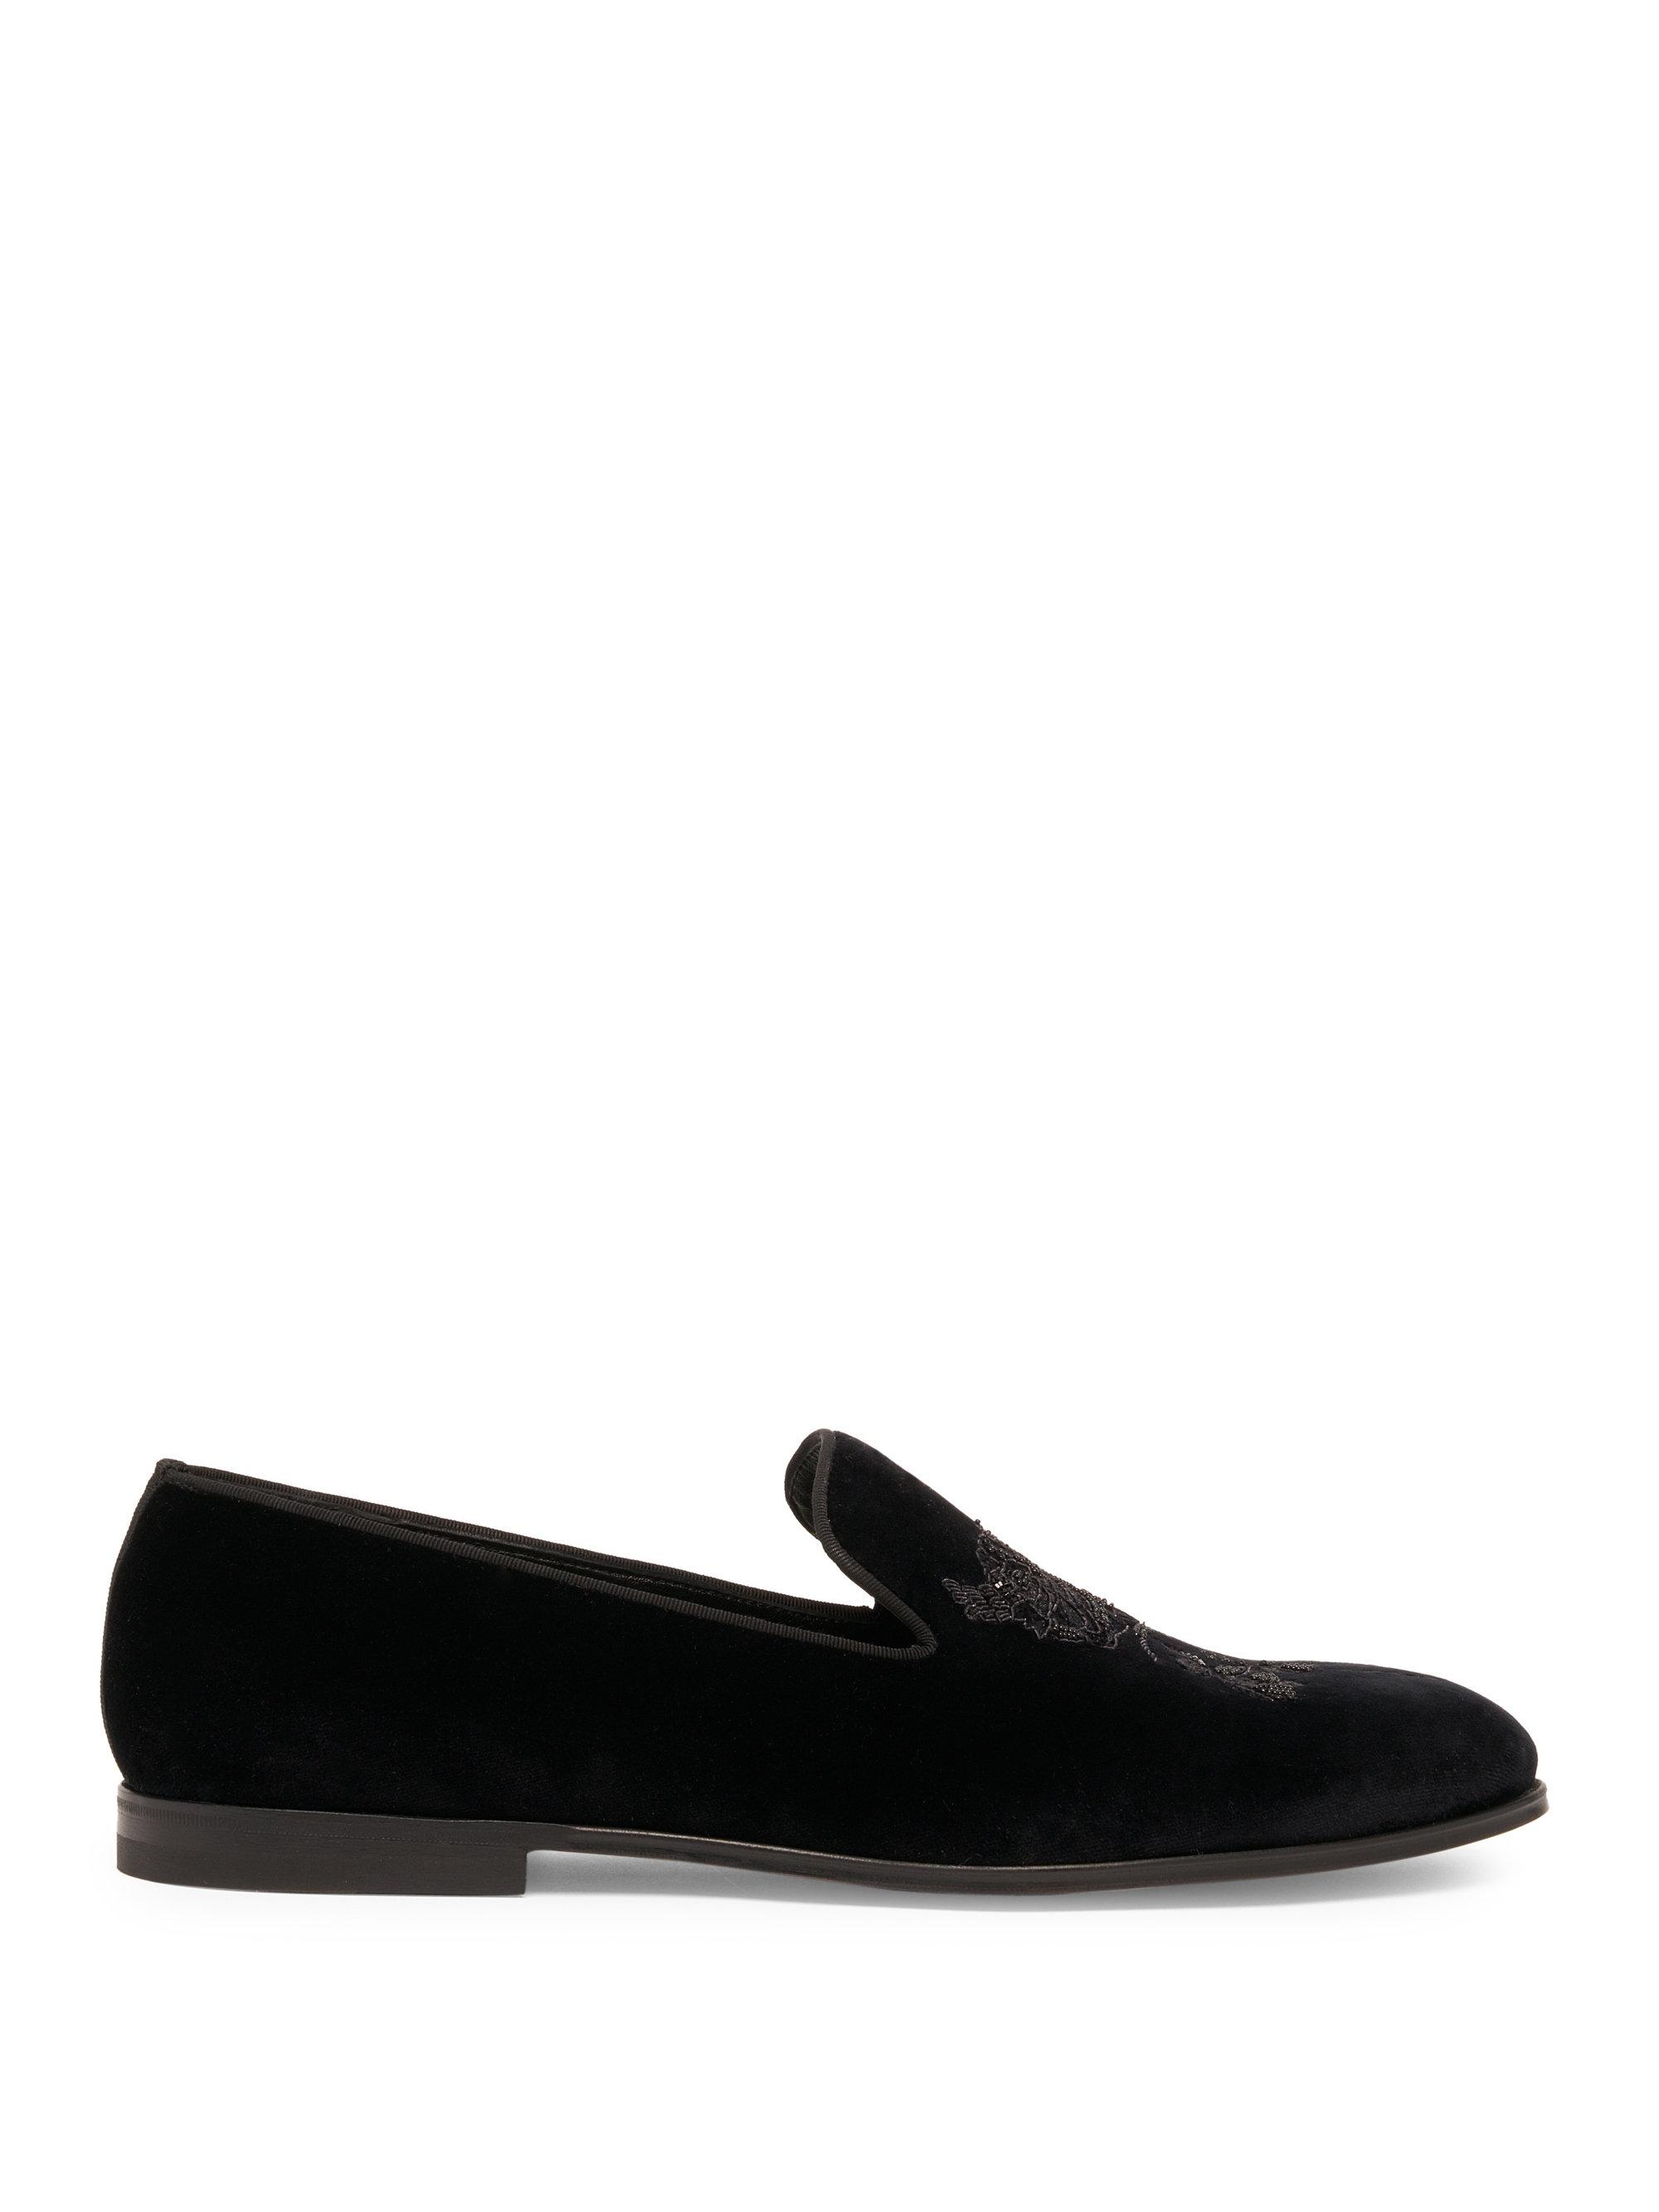 where to buy cheap real outlet shop offer Alexander McQueen Velvet Round-Toe Loafers discount new official for sale clearance huge surprise c9D42V7